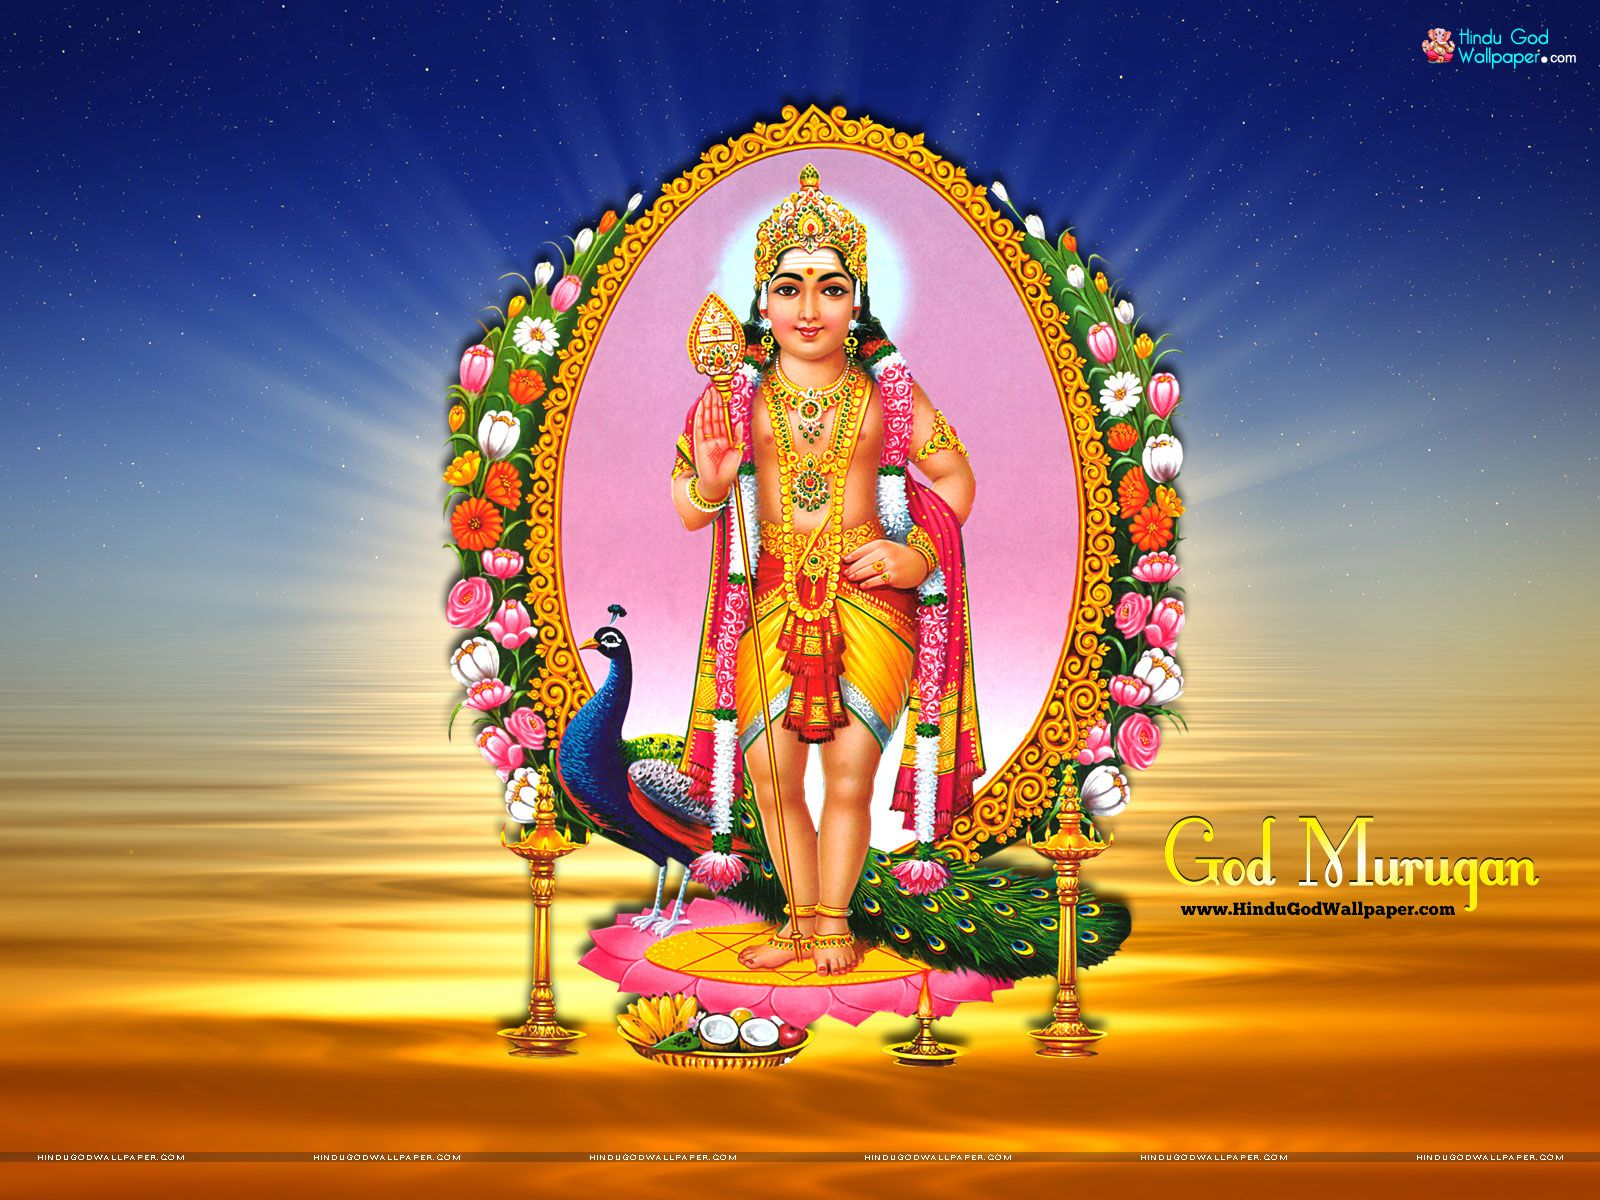 tamil god murugan wallpapers, images & photos downlo